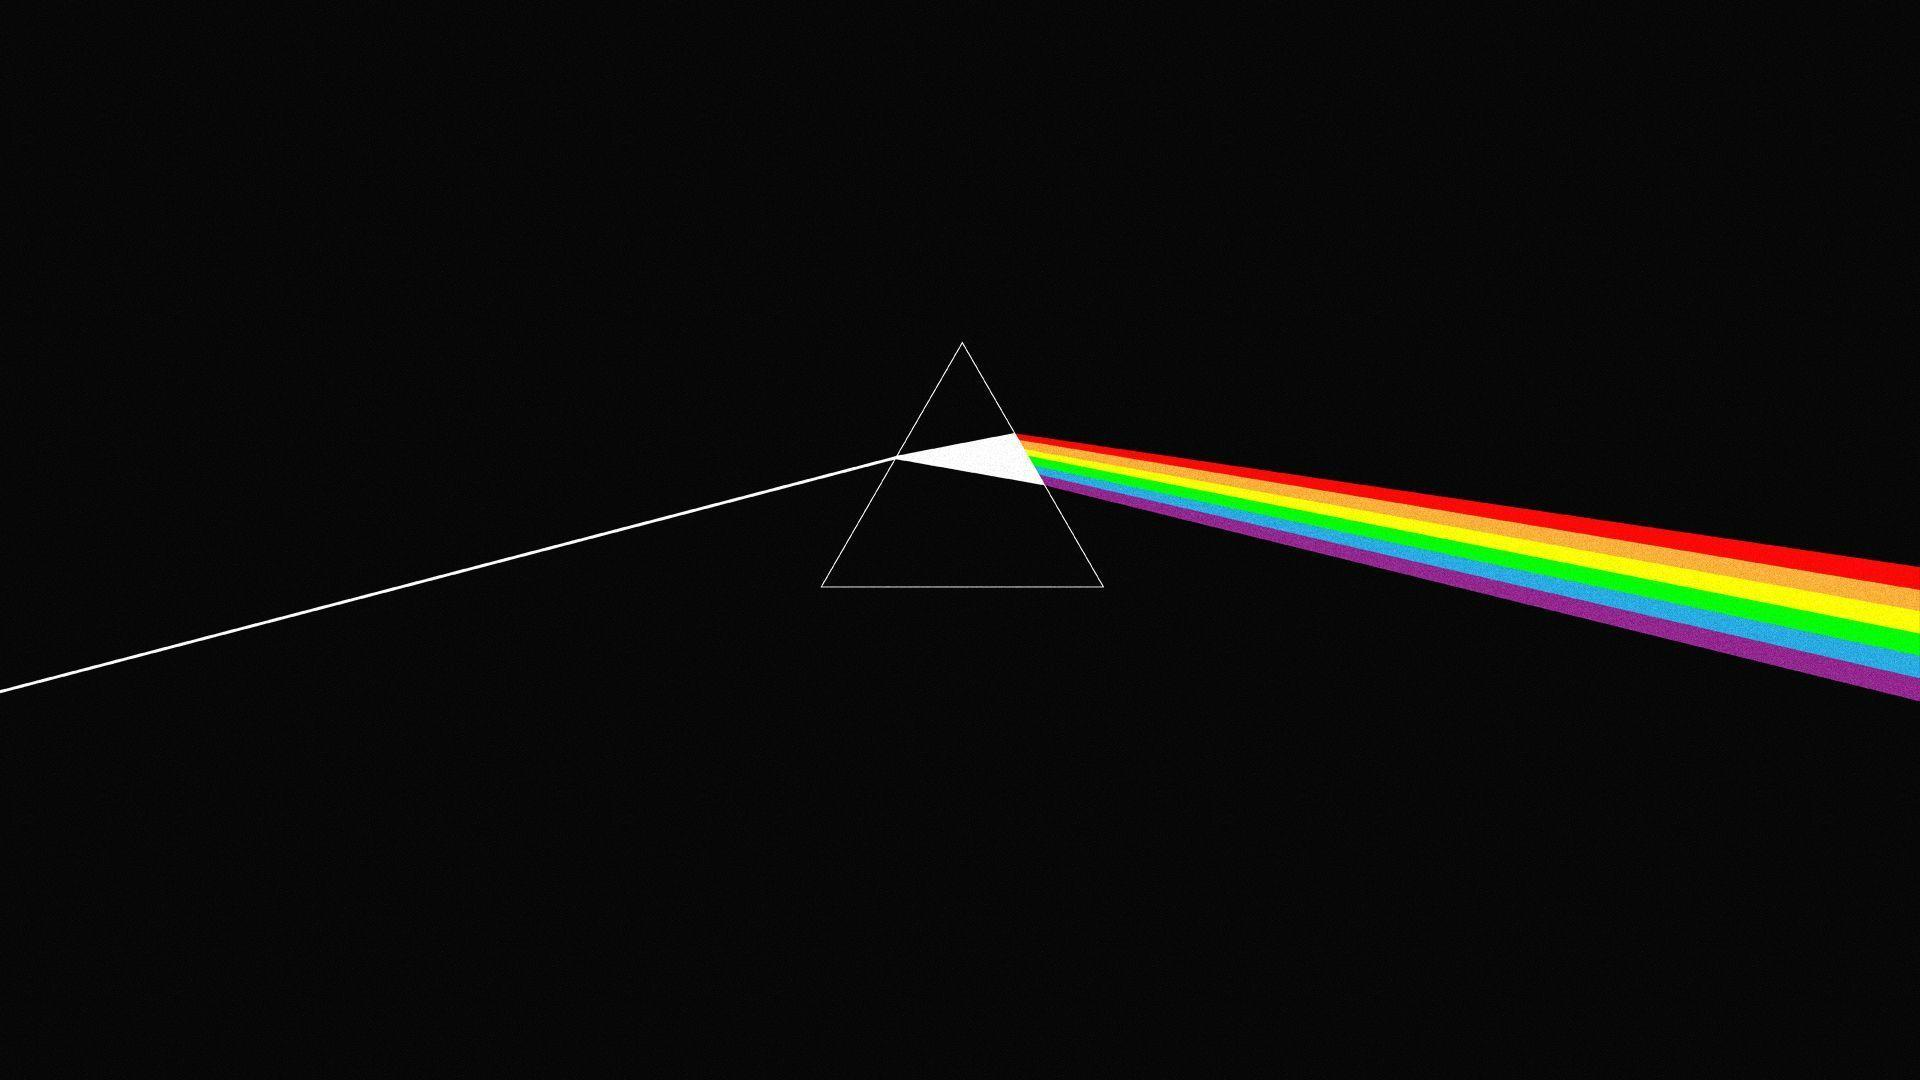 Wallpapers For U003e Pink Floyd Iphone Wallpaper The Wall